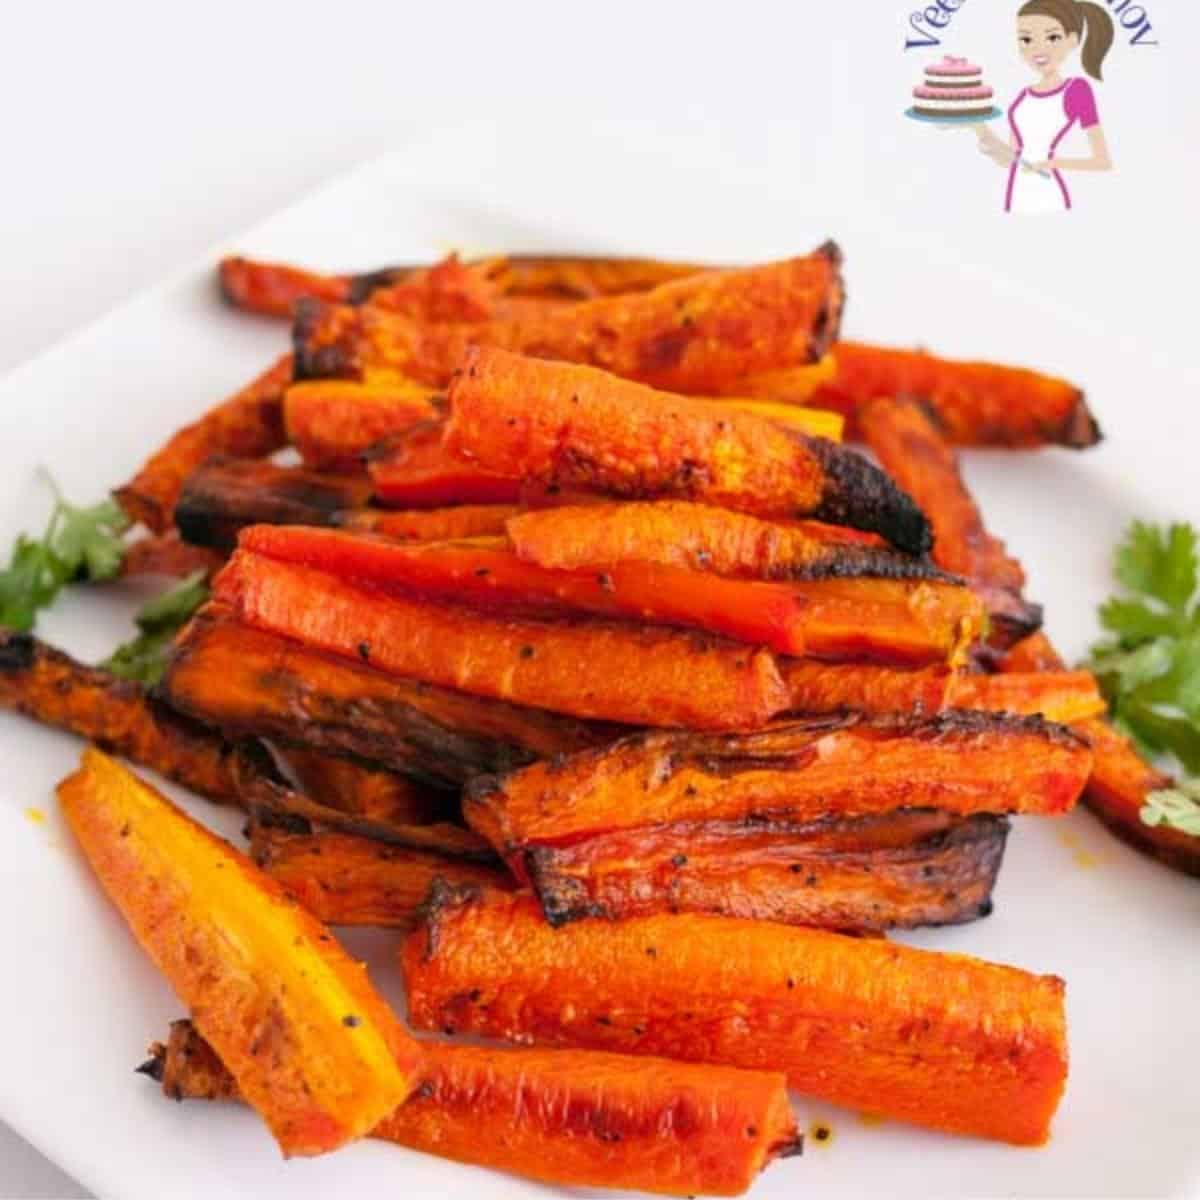 A platter of baked carrots